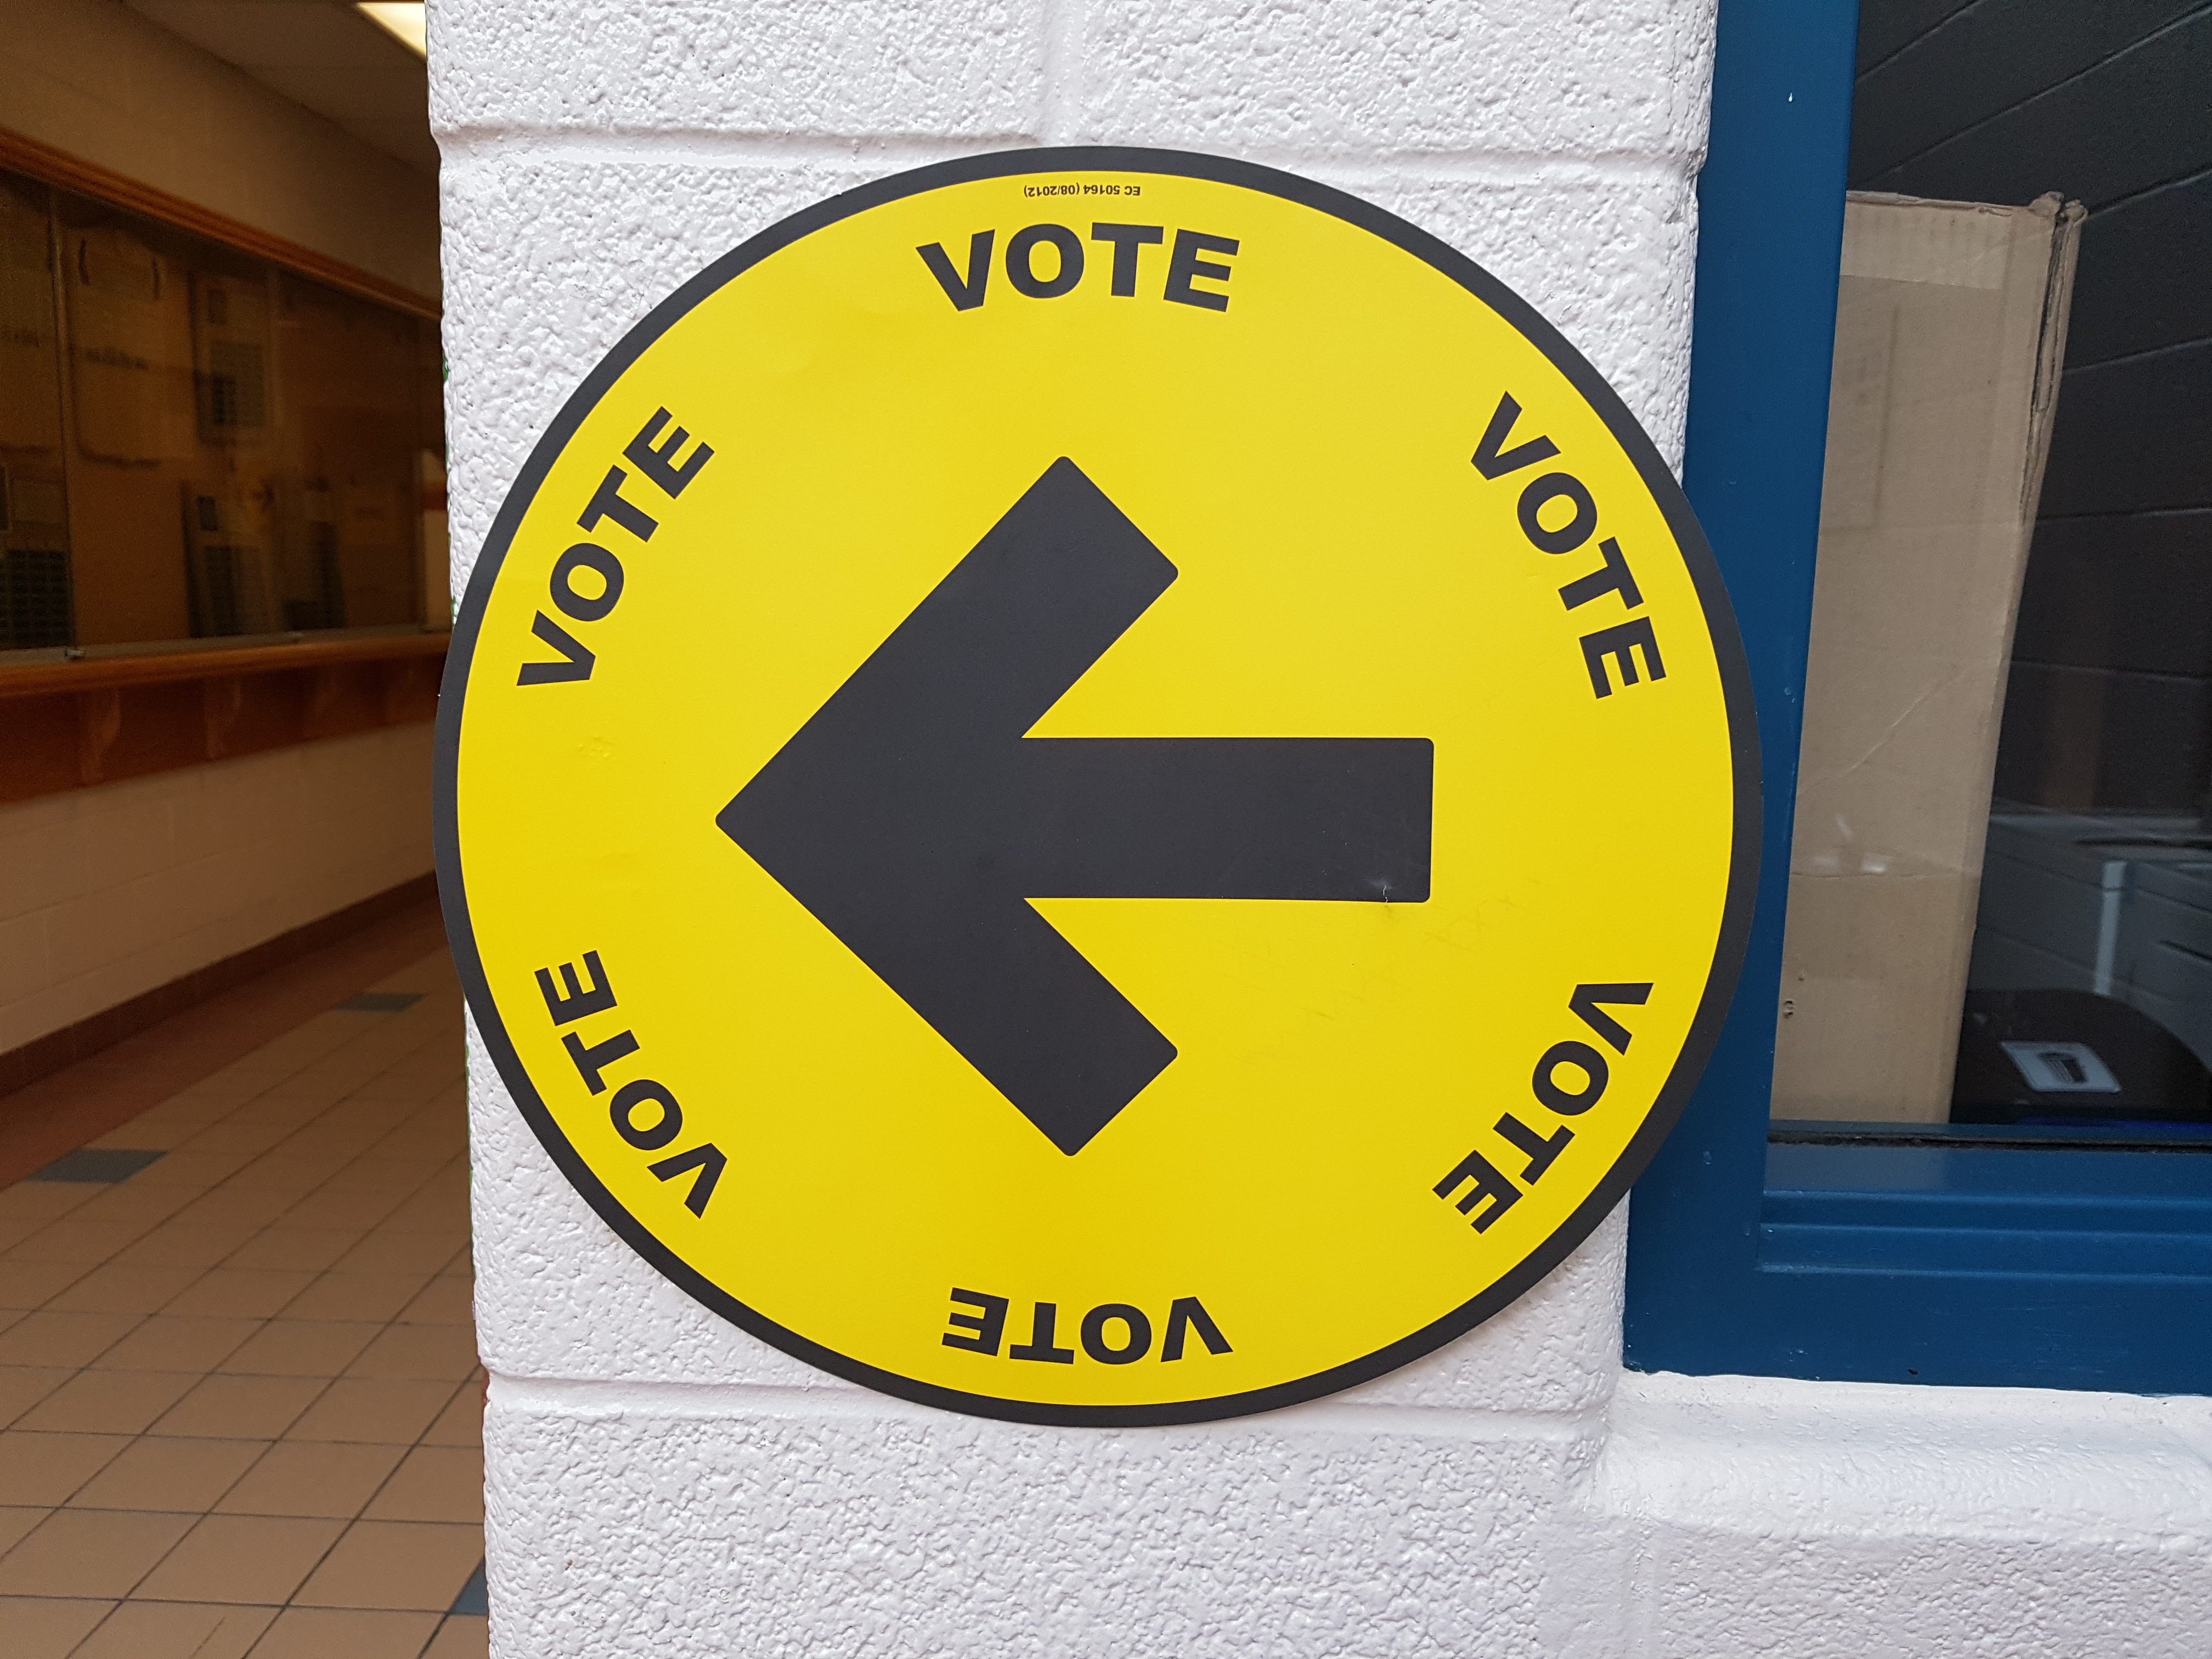 Waterloo with highest voter turnout in region